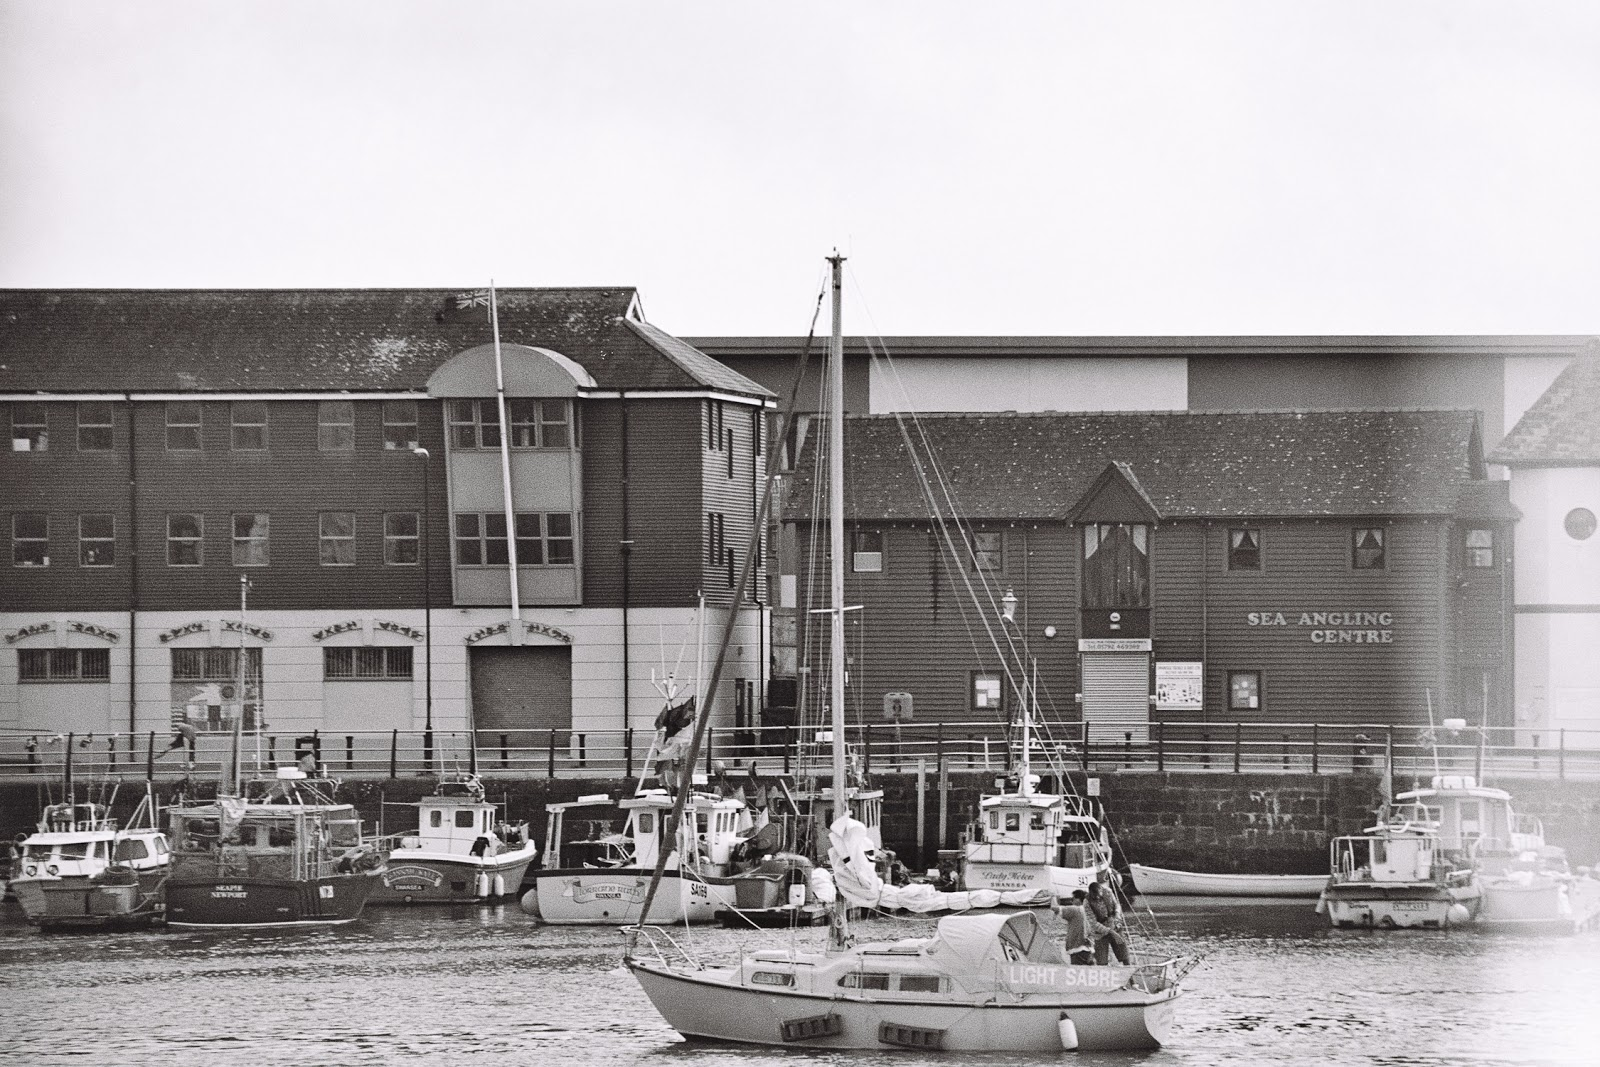 Swansea Marina, Black and white photography